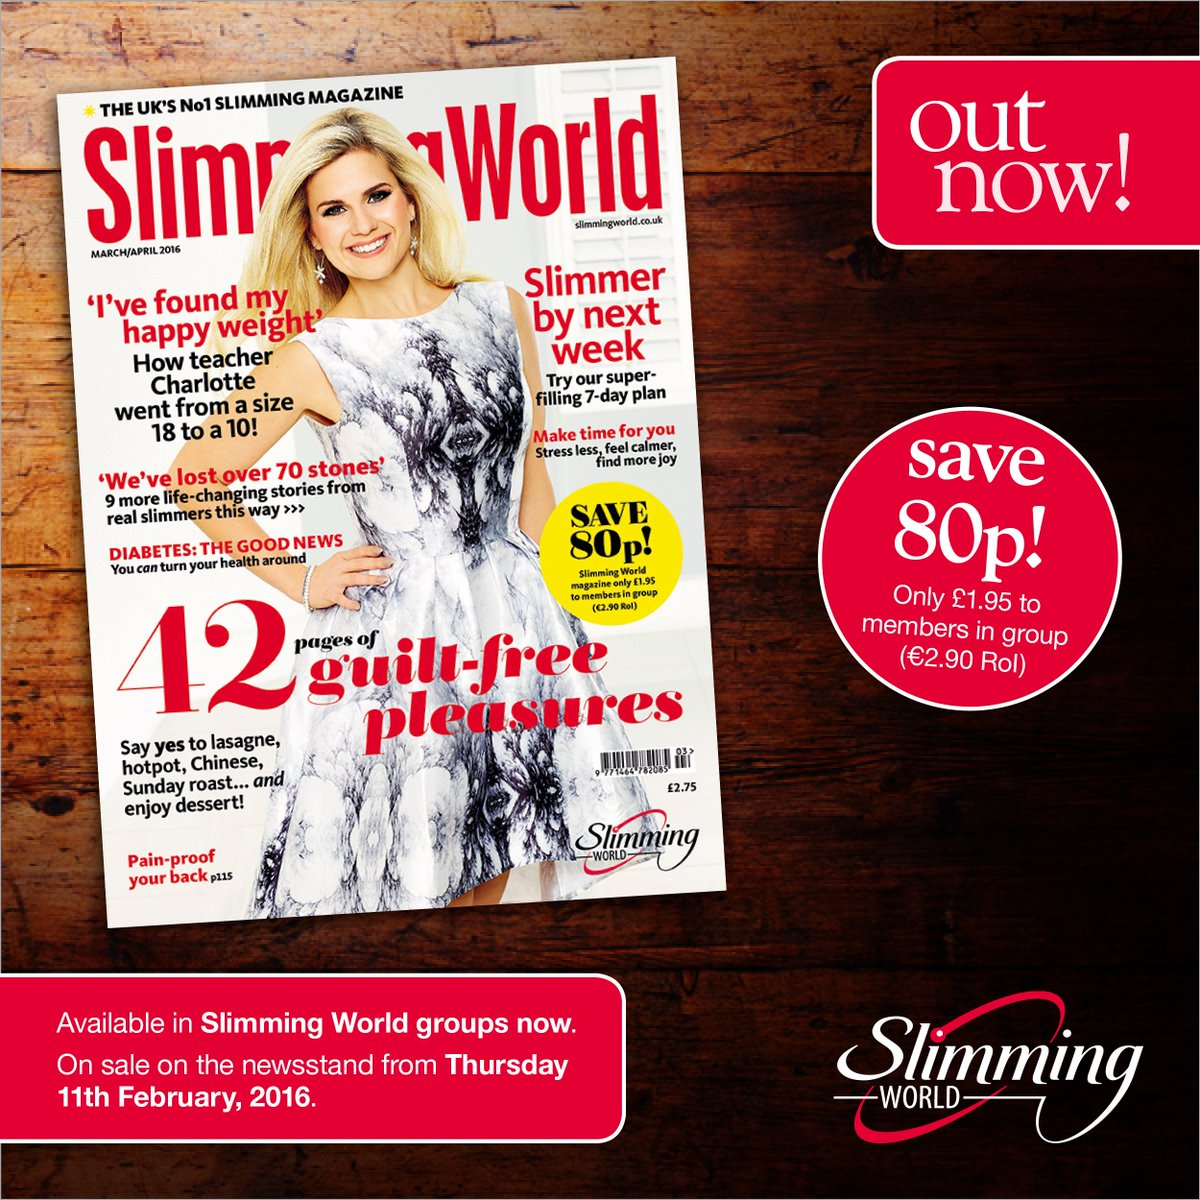 Diann griffiths swwrexham twitter Slimming world my account